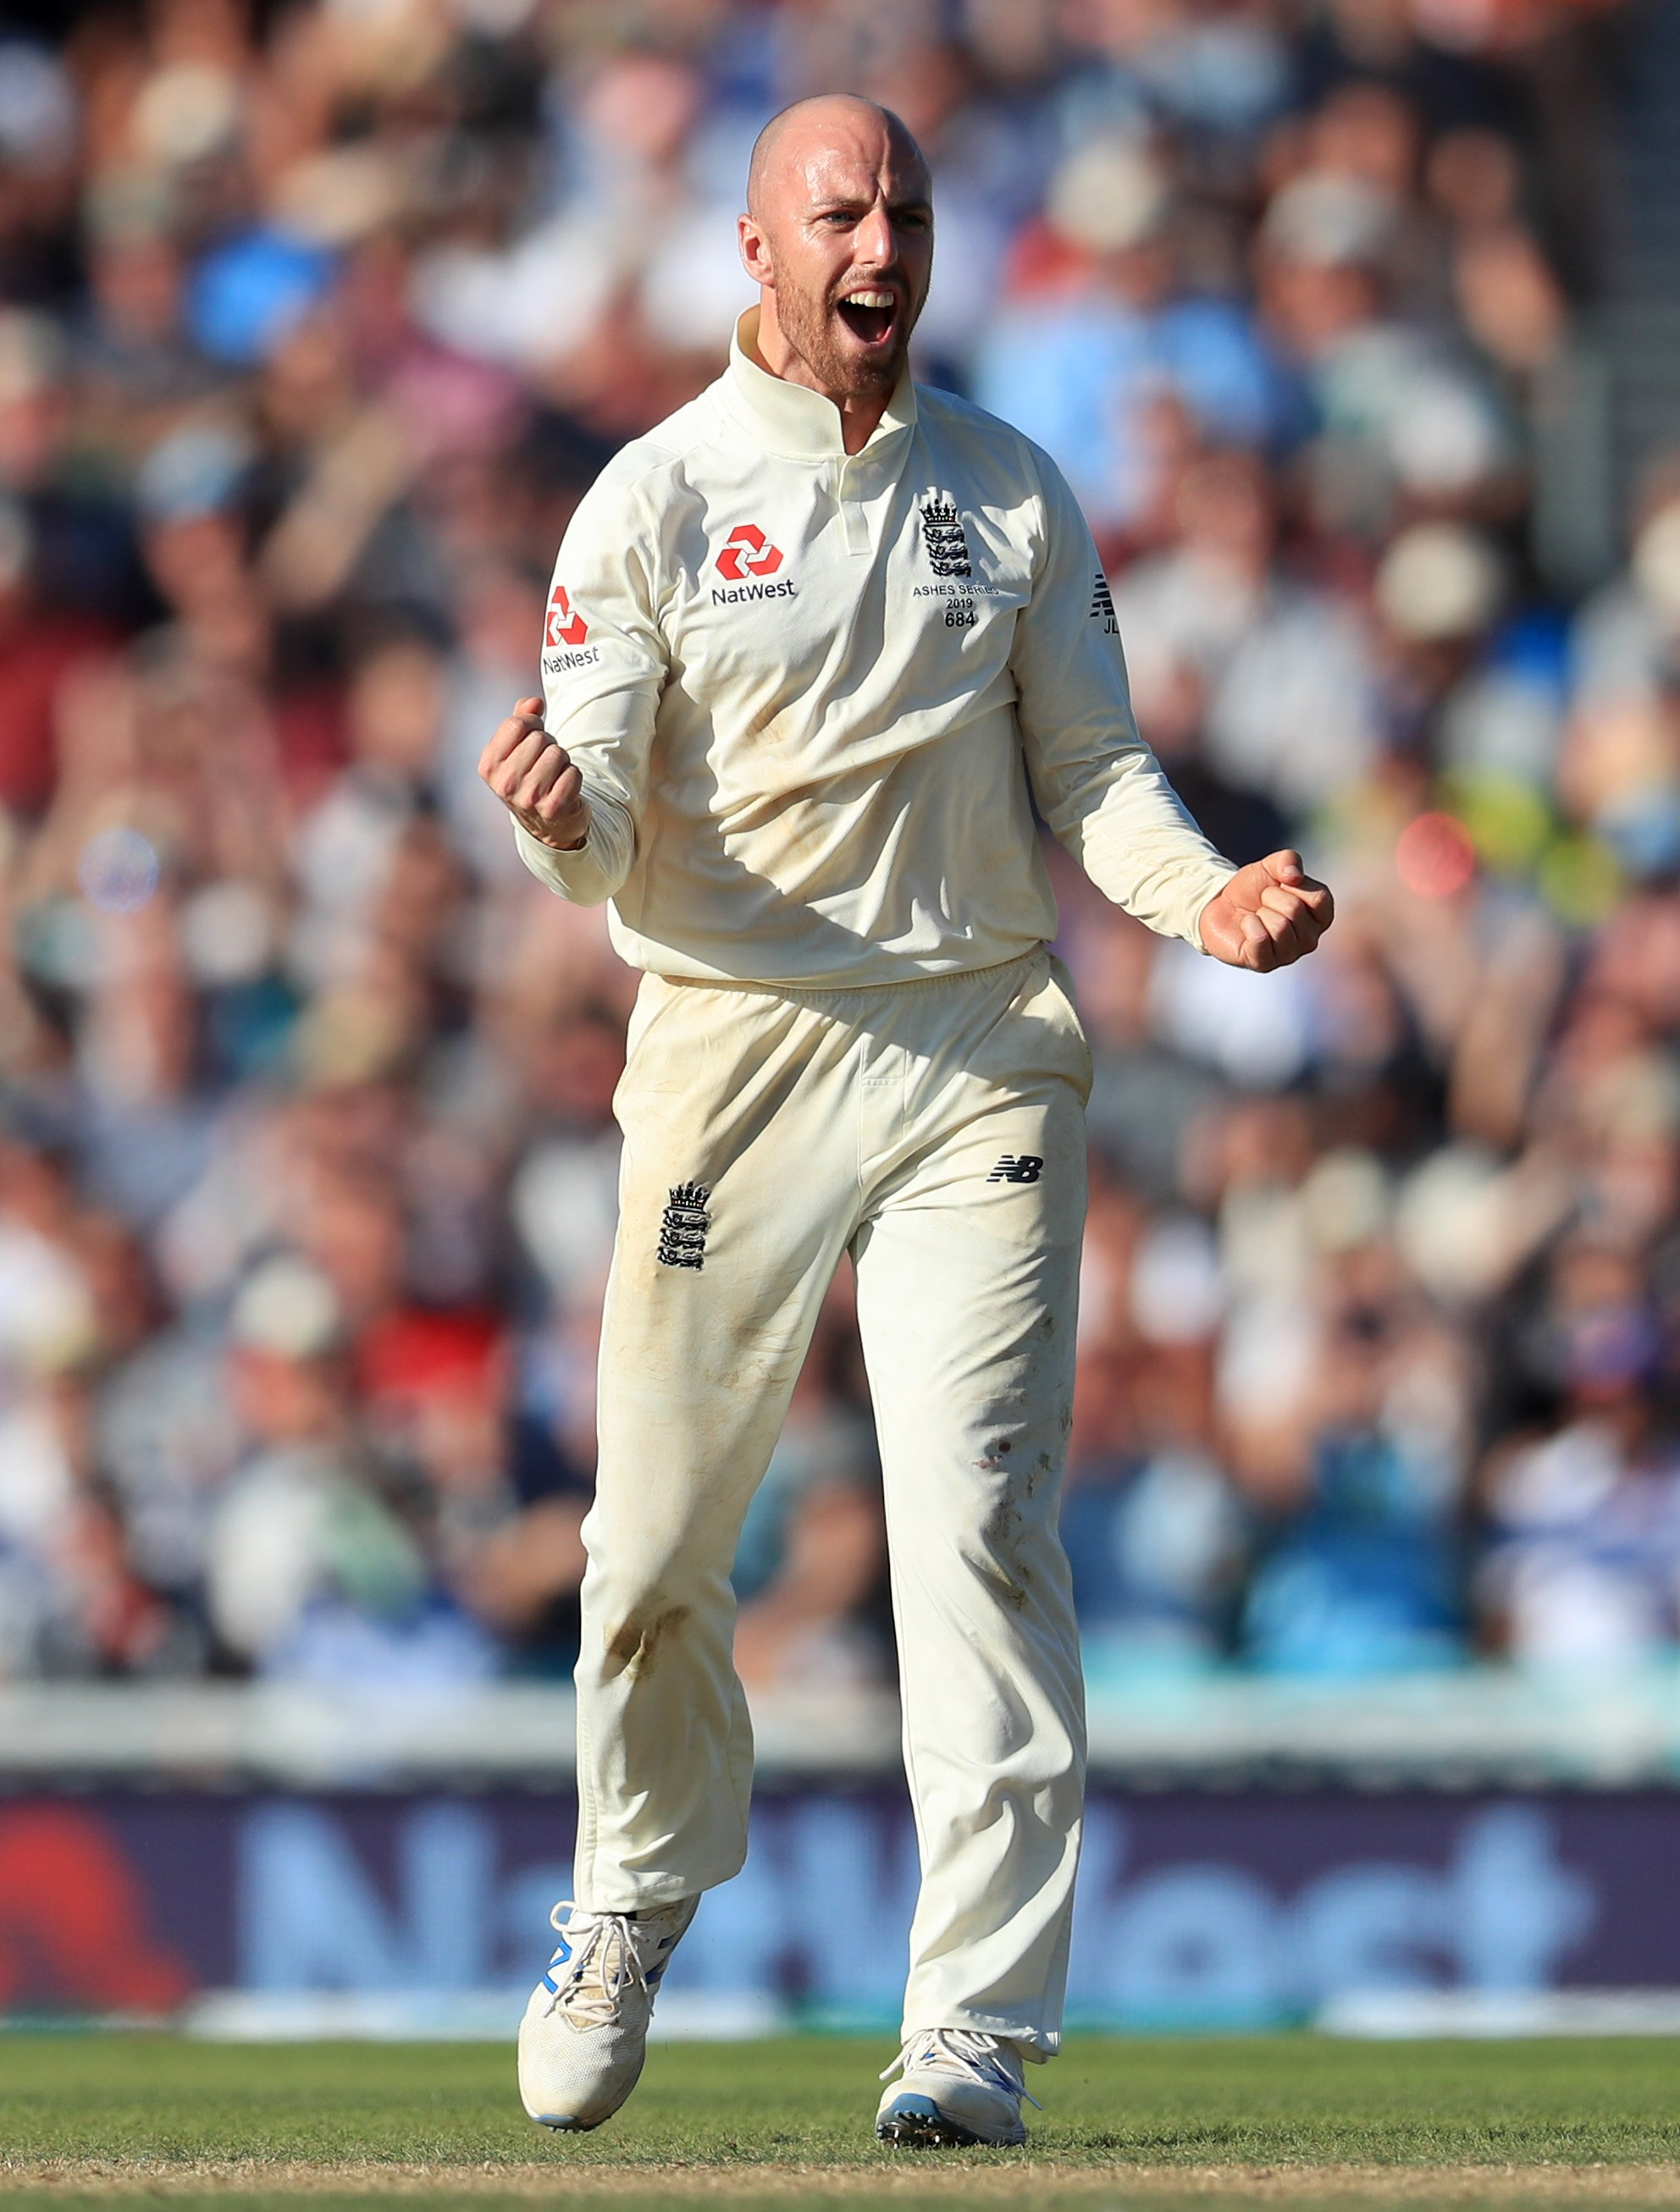 Jack Leach feels here to stay after establishing himself as top England spinner